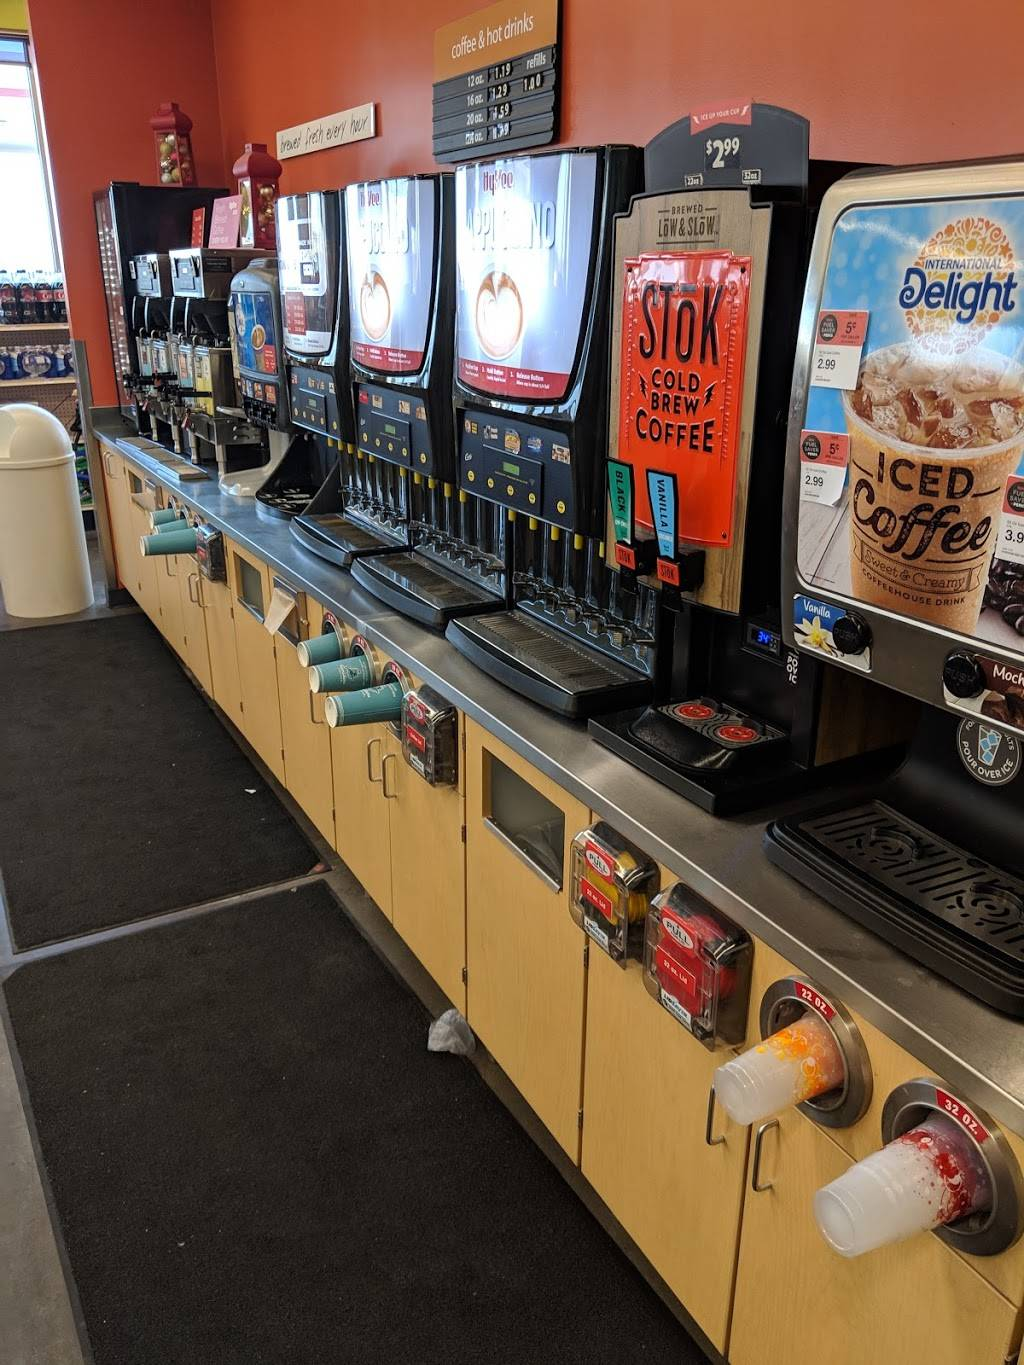 Hy-Vee Gas - gas station  | Photo 3 of 3 | Address: 7120 10th St N, Oakdale, MN 55128, USA | Phone: (651) 702-5944